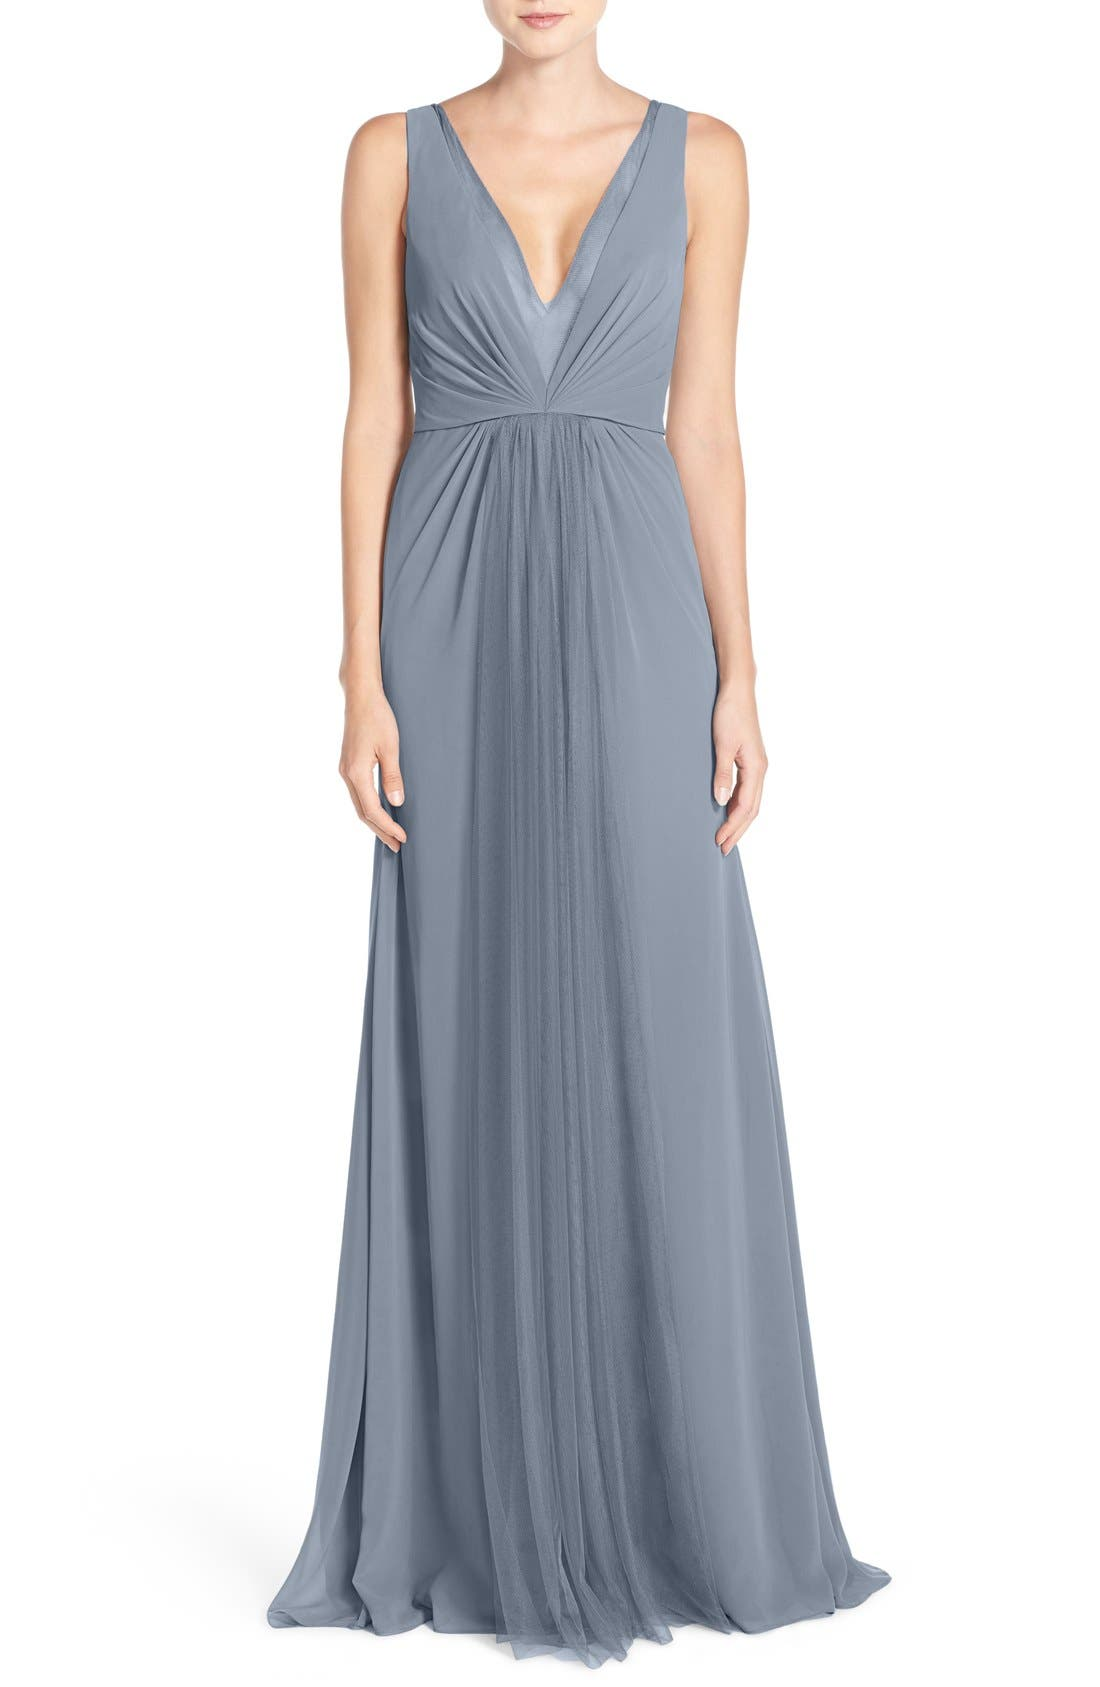 MONIQUE LHUILLIER BRIDESMAIDS Deep V-Neck Chiffon & Tulle